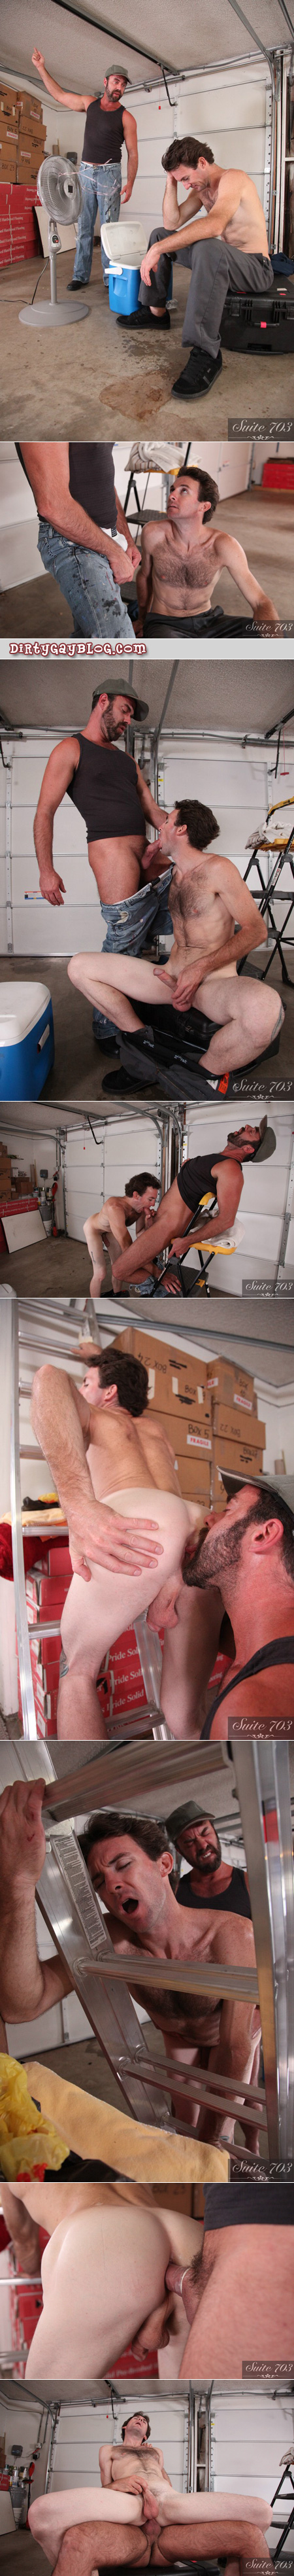 Two hairy older workmen have gay sex in the garage on the job site.